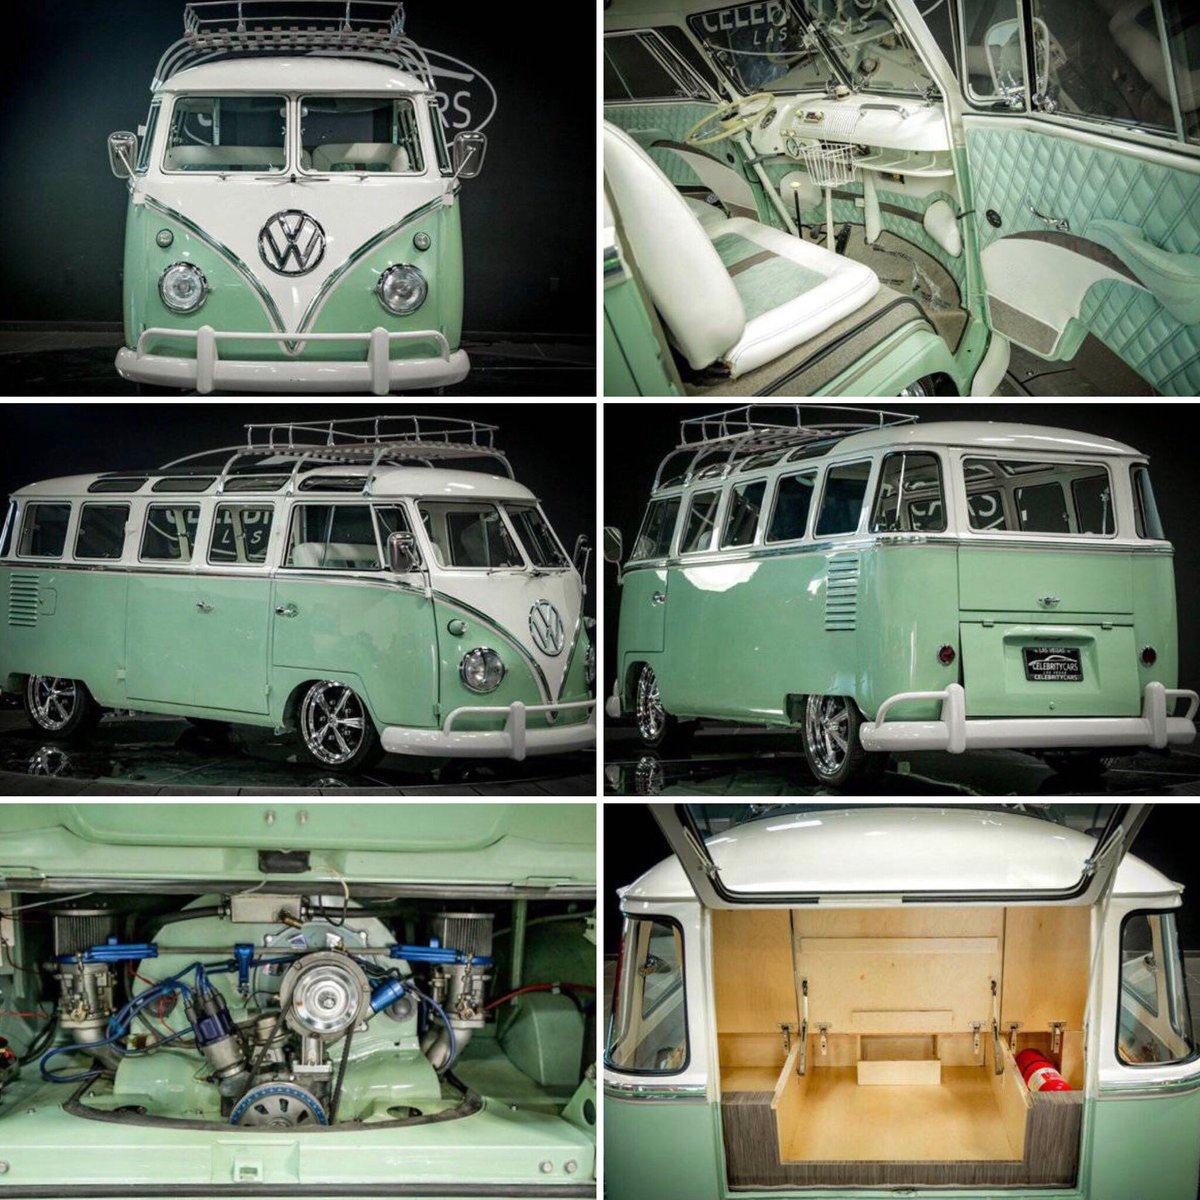 Vw bus and camper on twitter 1958 custom volkswagen 23 for 1958 vw bus 23 window